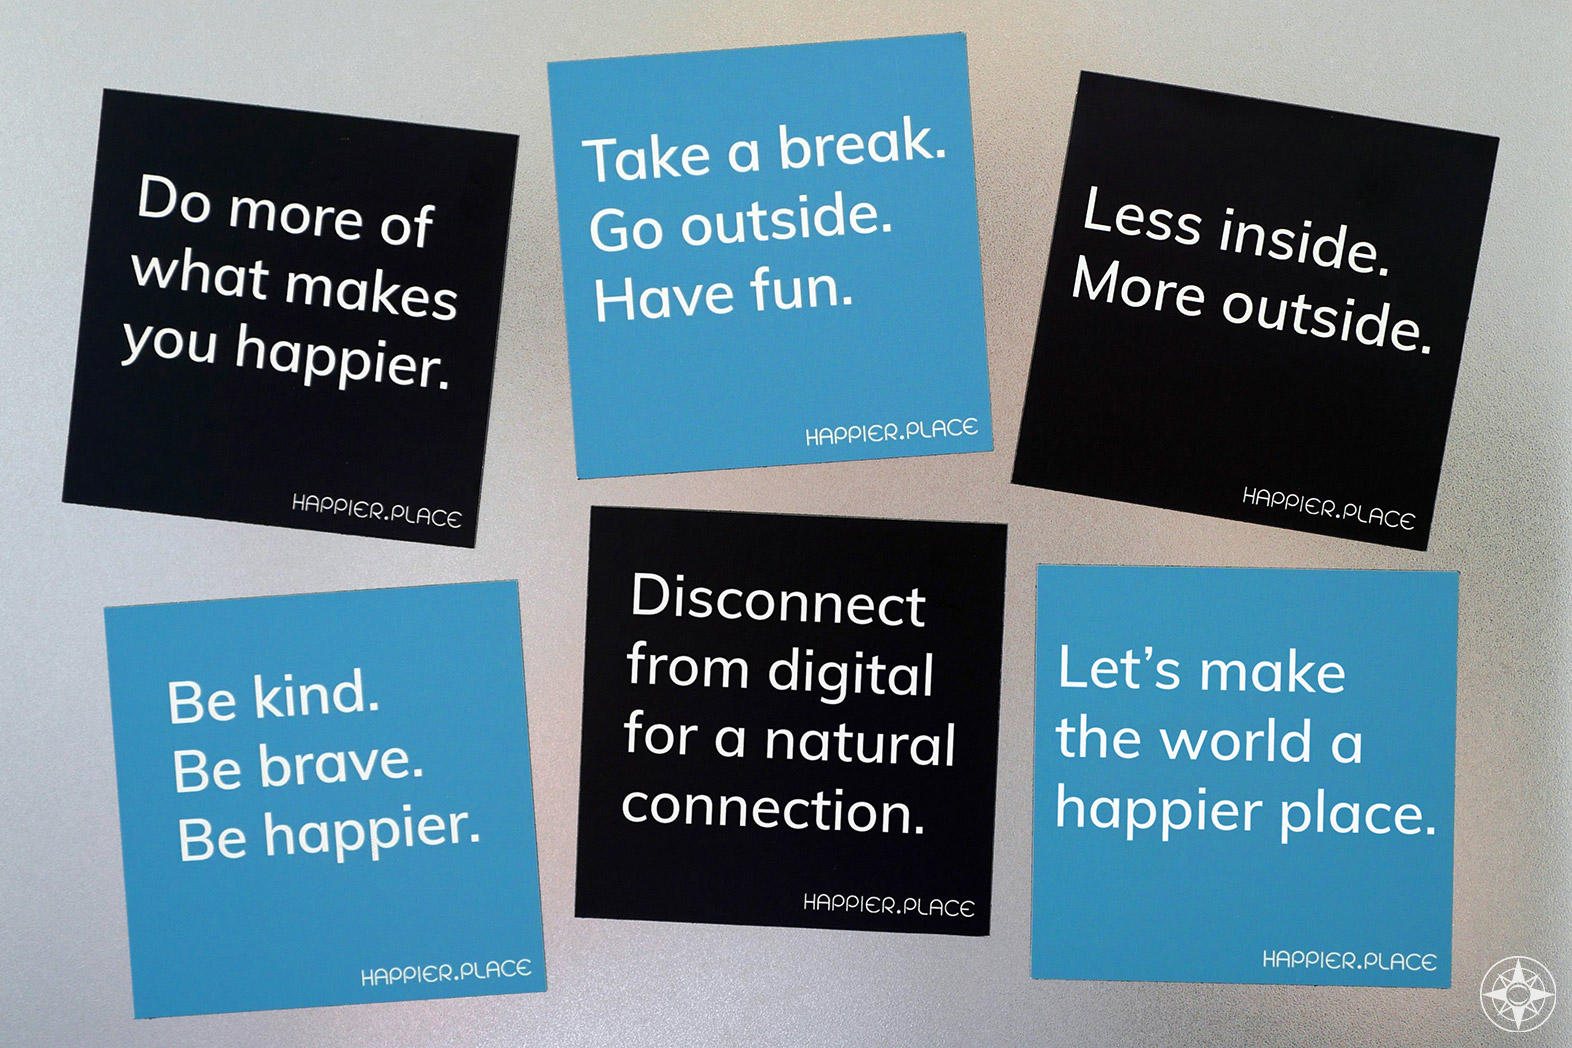 Happier Place Slogan Magnets, Take a break go outside have fun, Let's make the world a happier place, Be brave be kind be happier, Disconnect from digital for a natural connection, Less inside more outside, Do more of what makes you happier, inspiration, motivation